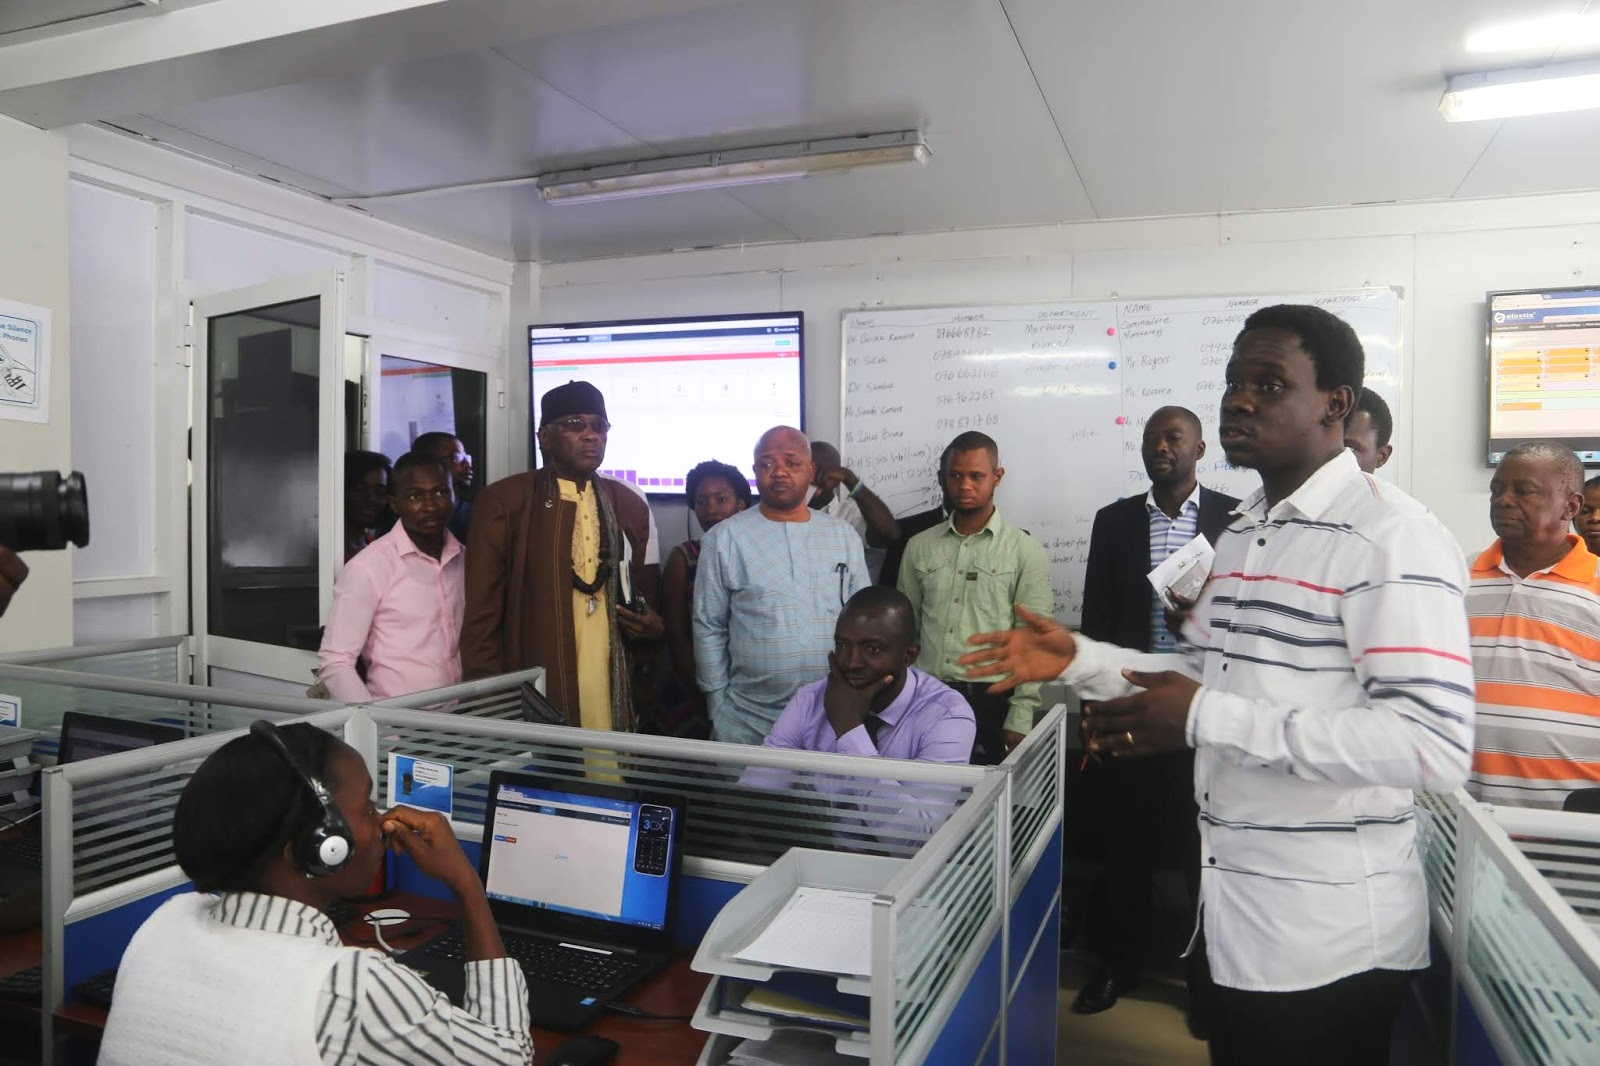 Photo caption: Alexander Taylor, 117 Call Center Manager conducted a tour of the upgraded facility